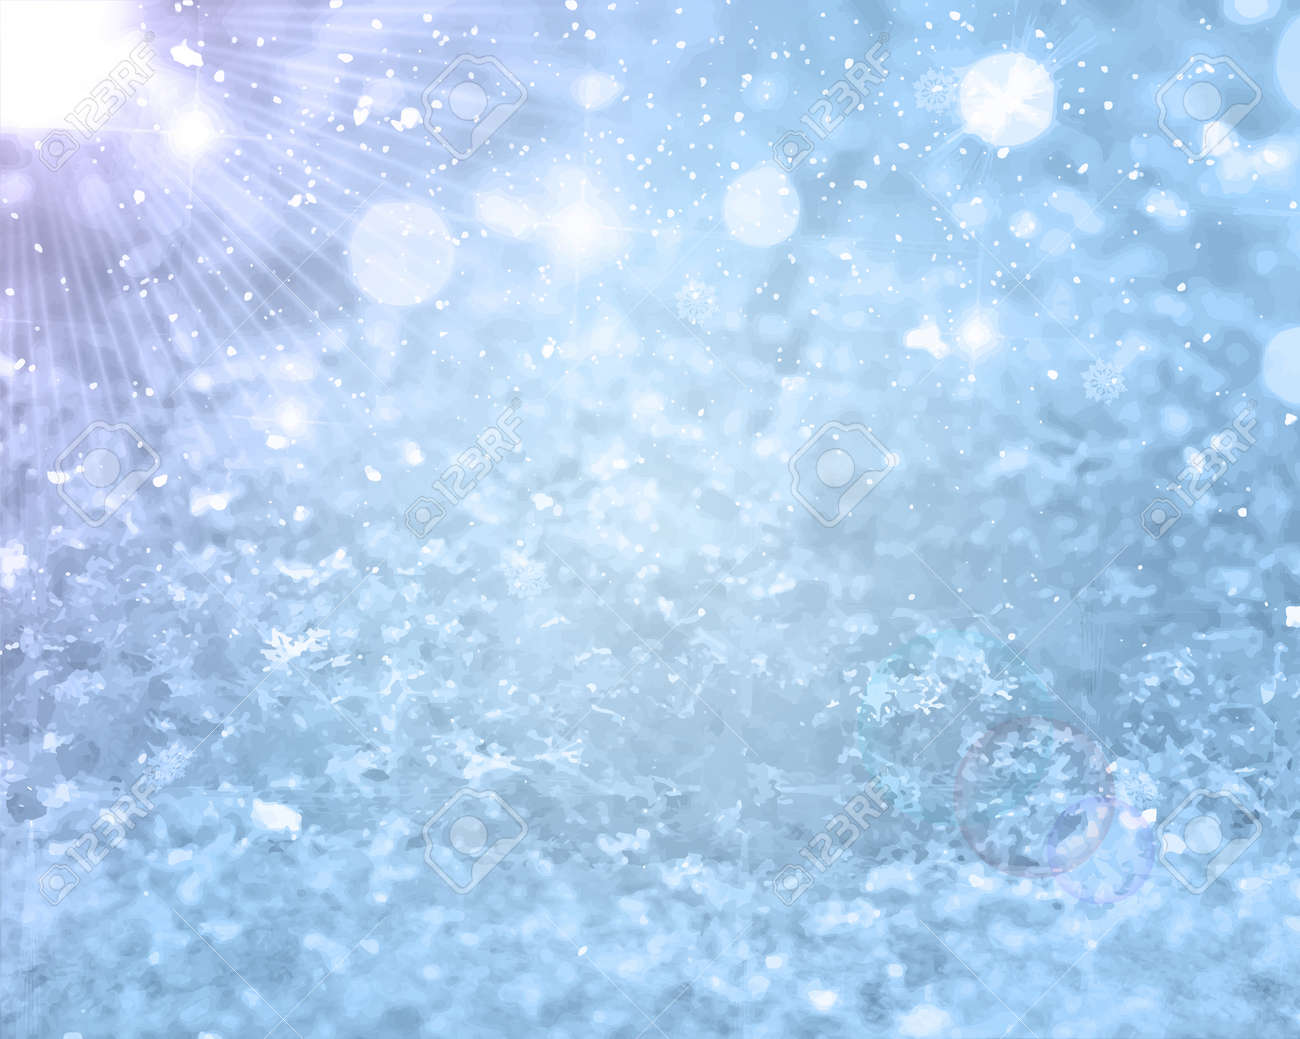 Realistic falling snow. Christmas or Winter background for greetings or advertising with place for text. Glows Frost effect Vector Illustration EPS 10 Isolated - 152074625